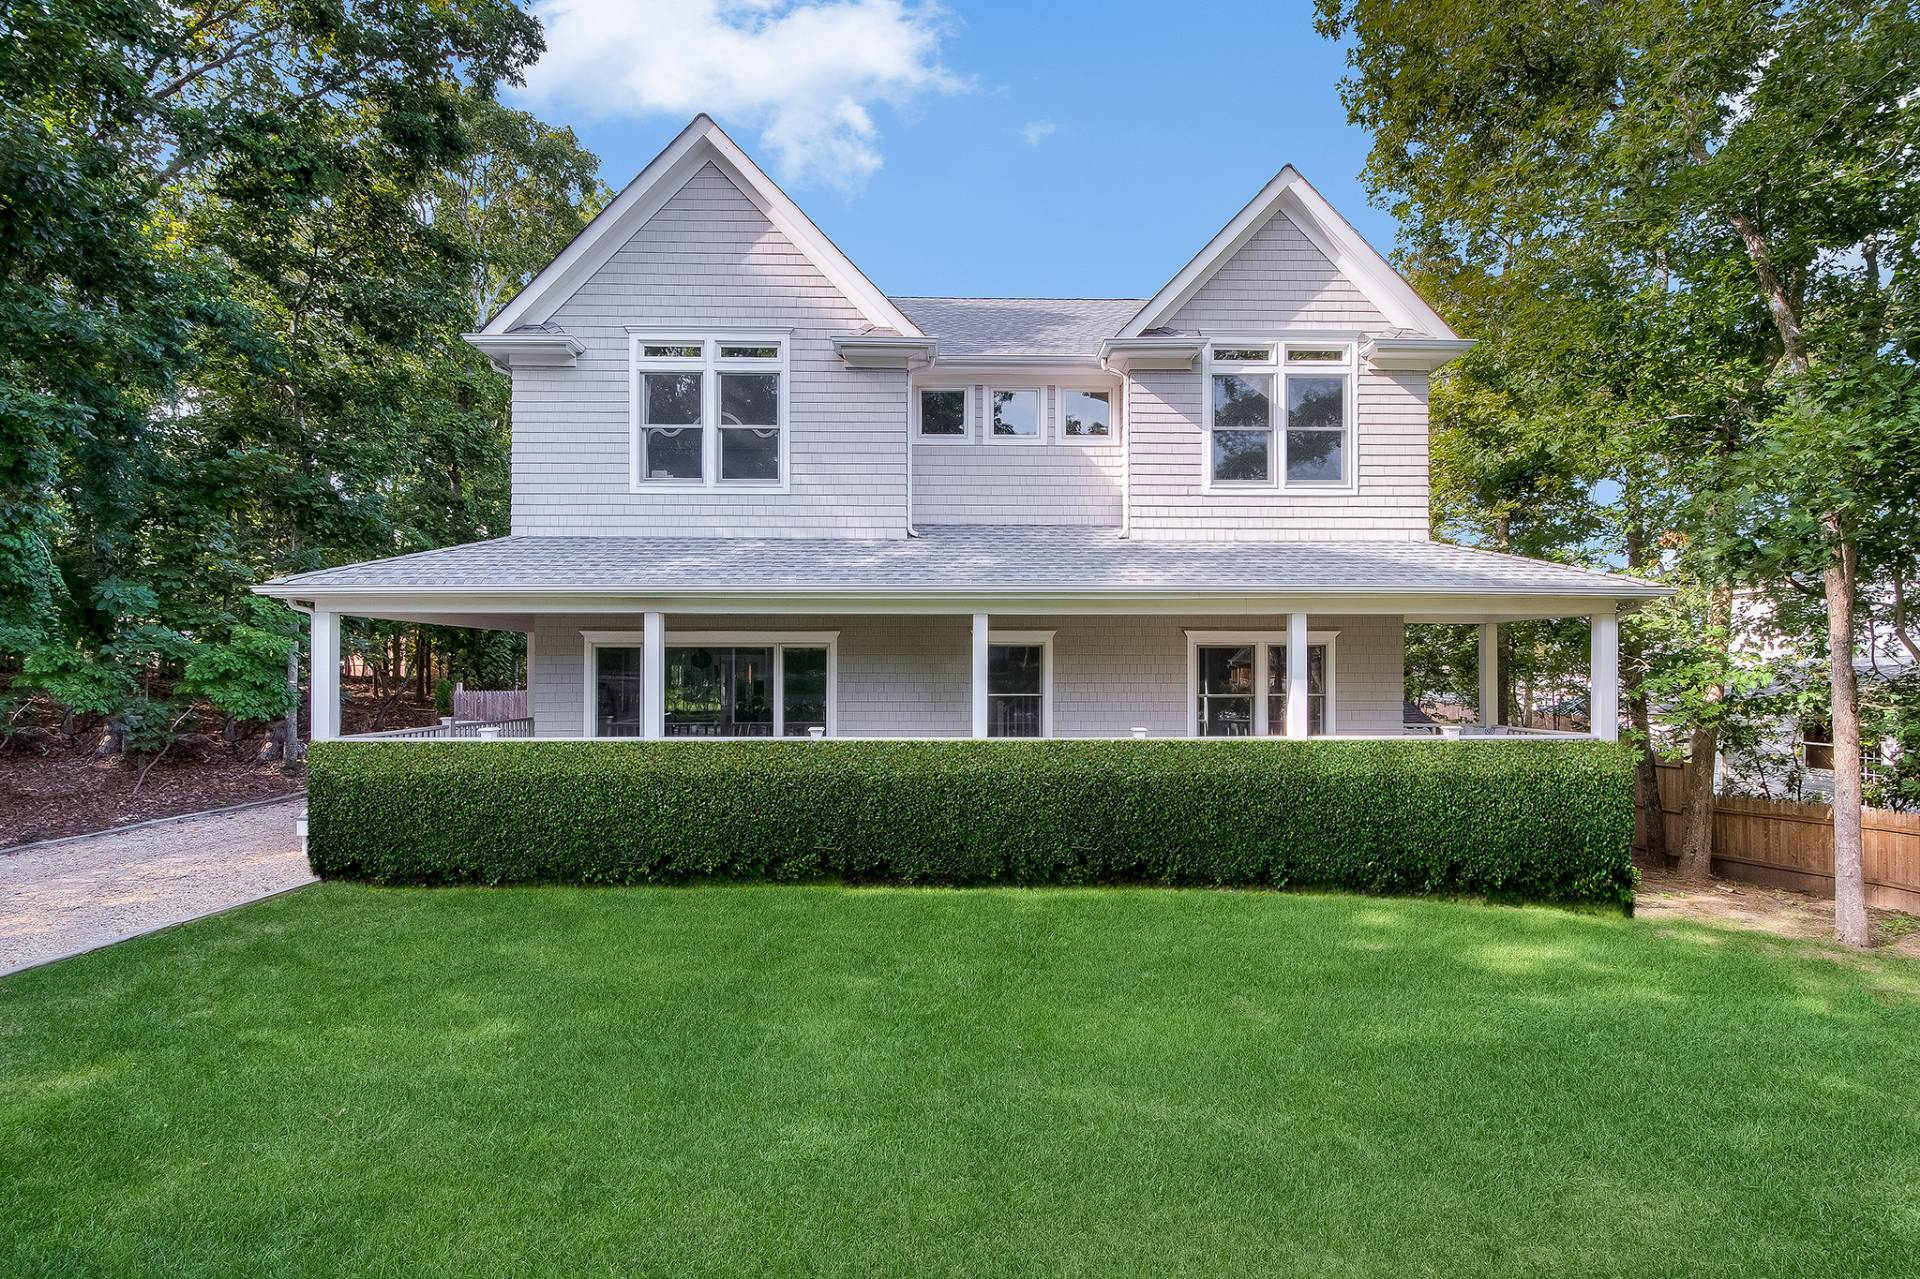 Single Family Home for Sale at Sandy Bay Beach In Sag Harbor Village 3 Wilson Place, Sag Harbor, New York